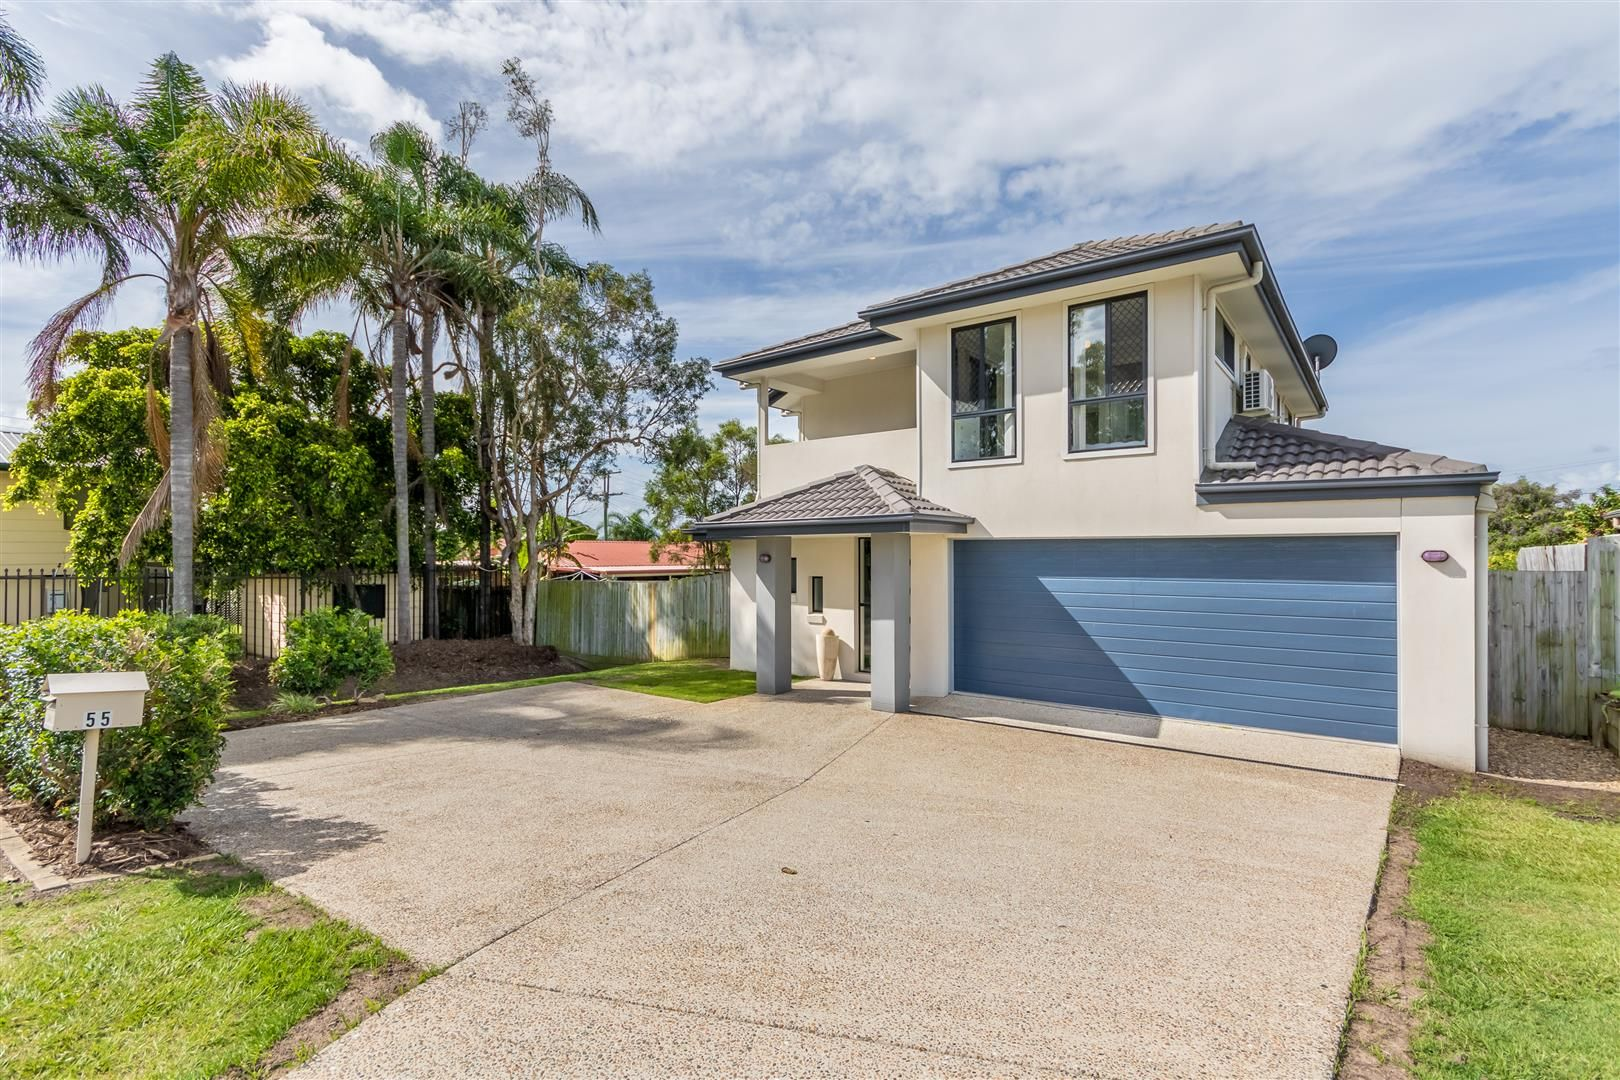 55 Kooyalee St, Deception Bay QLD 4508, Image 0